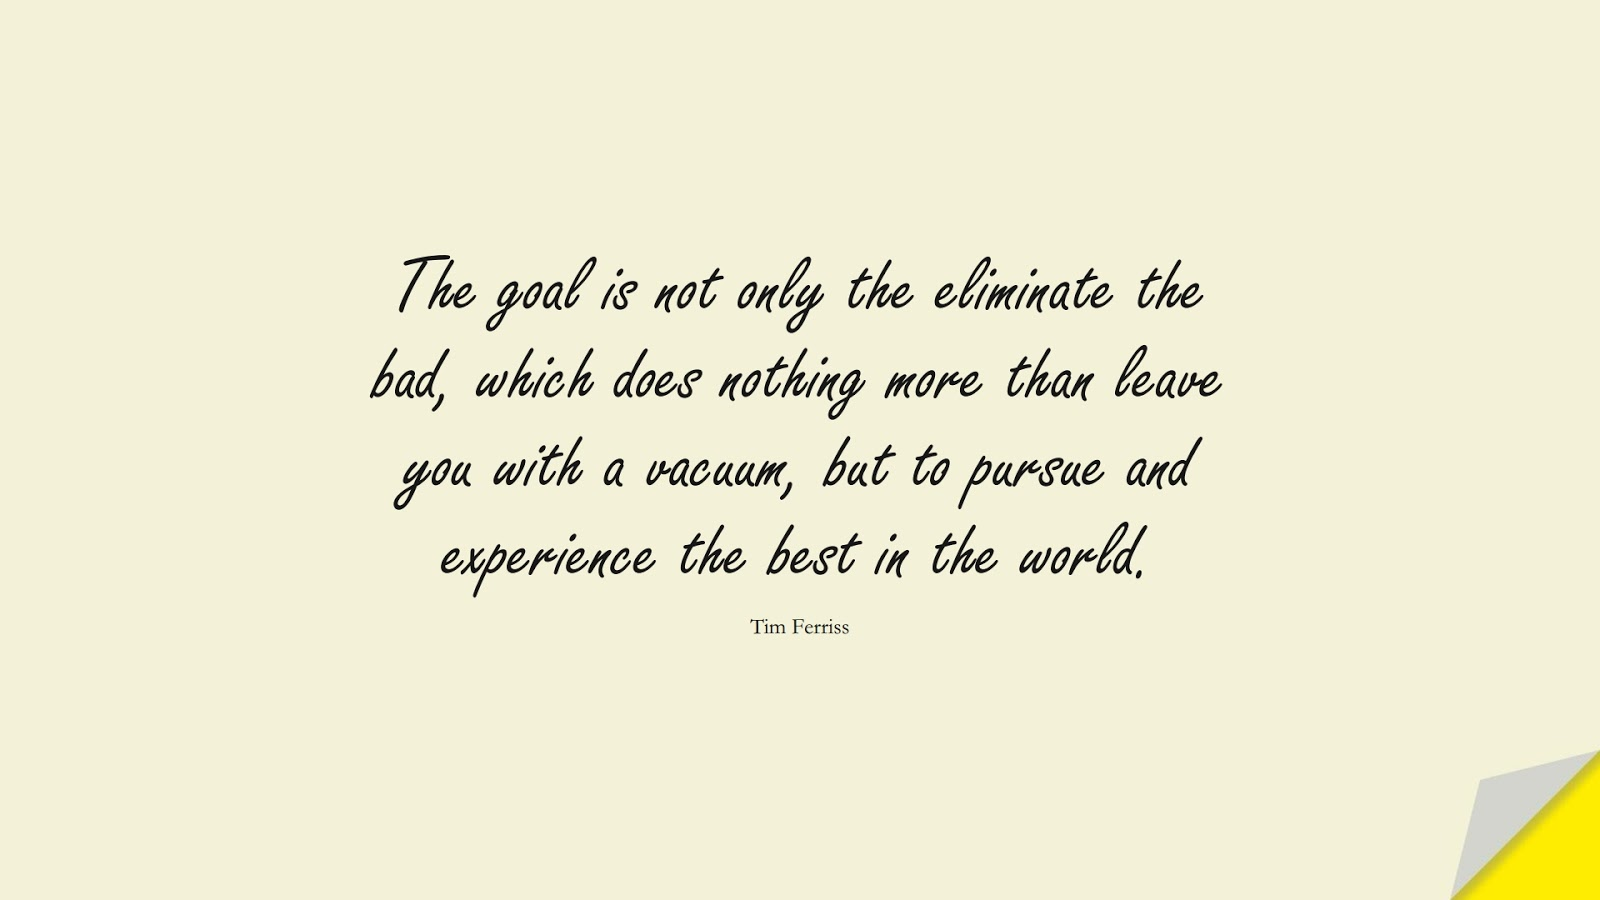 The goal is not only the eliminate the bad, which does nothing more than leave you with a vacuum, but to pursue and experience the best in the world. (Tim Ferriss);  #TimFerrissQuotes